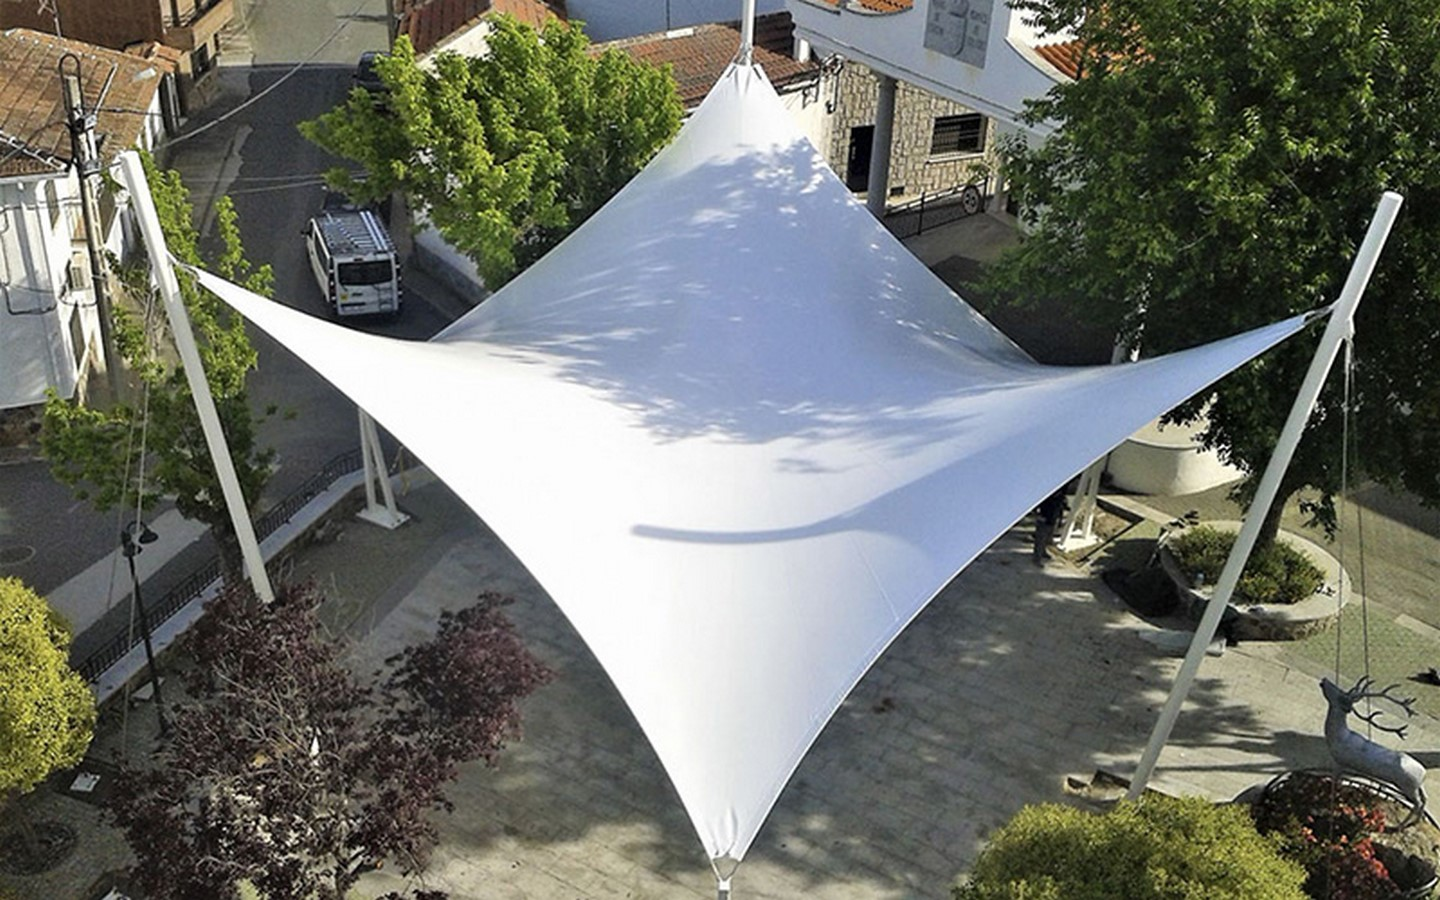 What are Hyperbolic paraboloid shells? - Sheet5